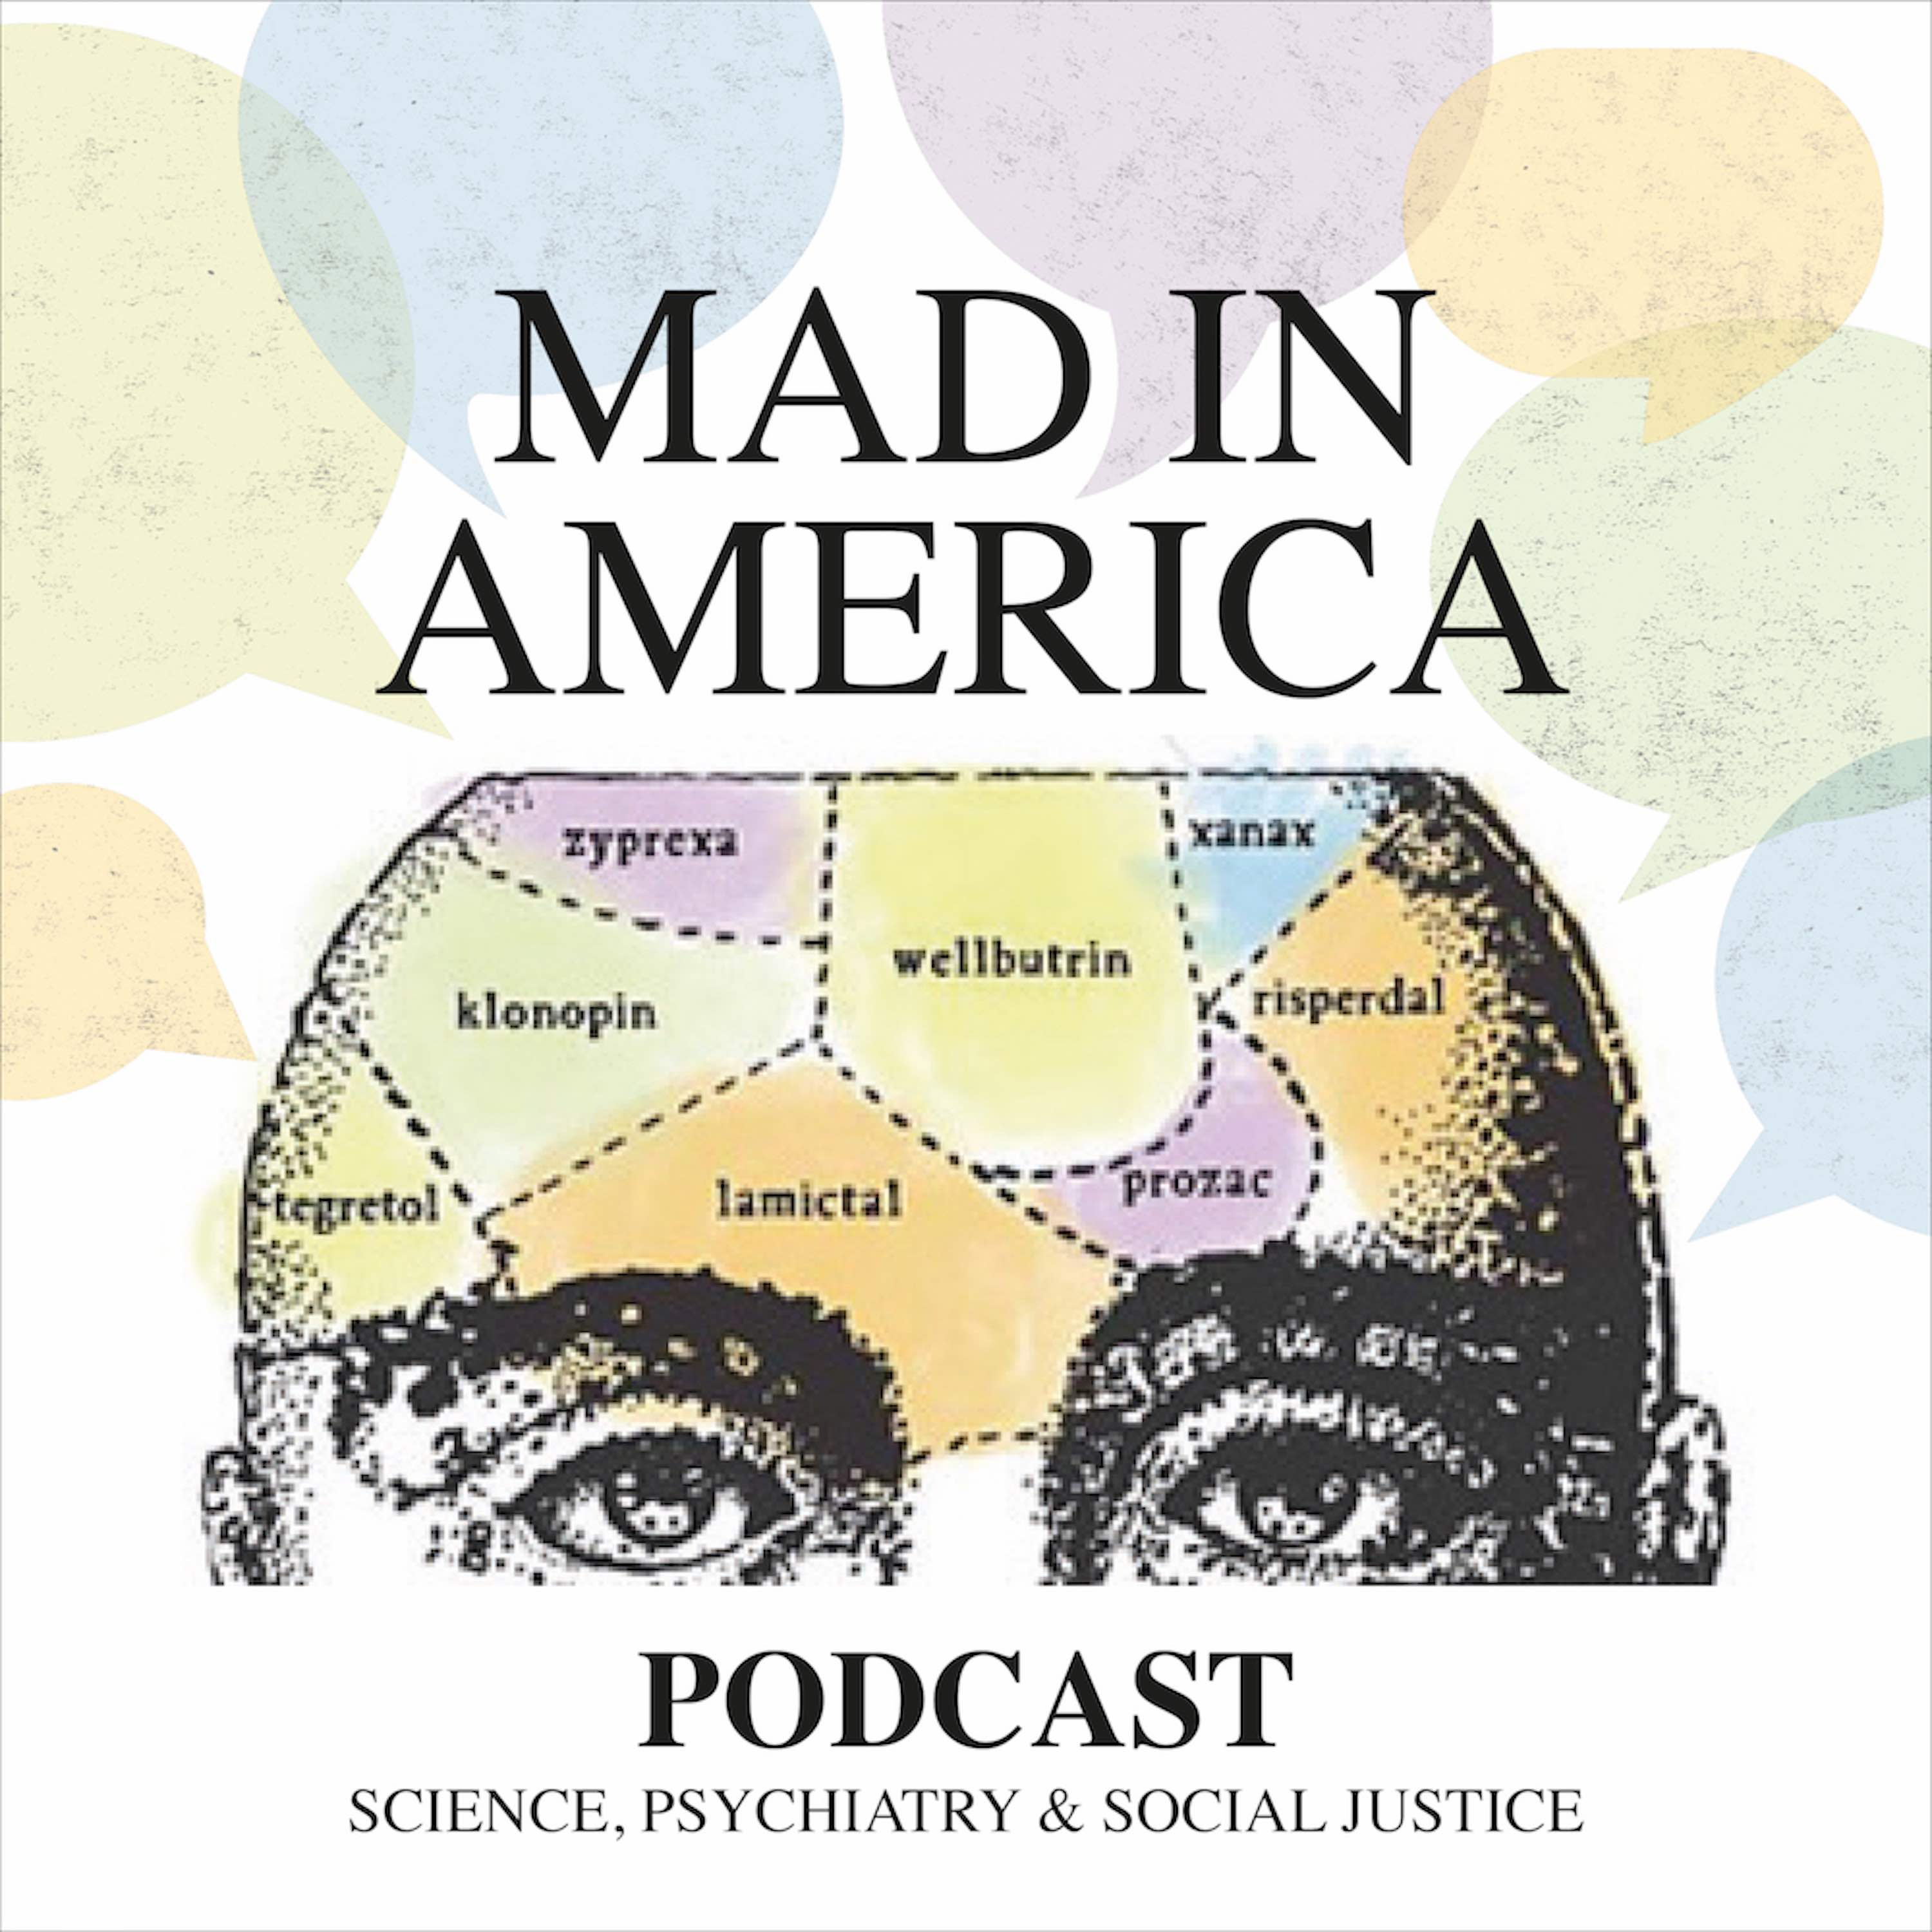 Mad in America: Rethinking Mental Health - Peter Groot and Akansha Vaswani - Tapering Strips and Shared Decision-Making